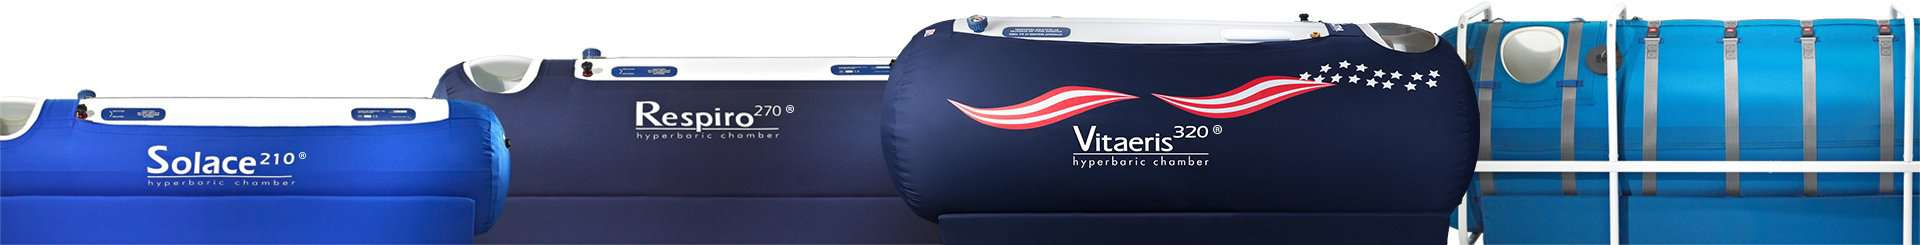 OxyHealth Hyperbaric Chambers